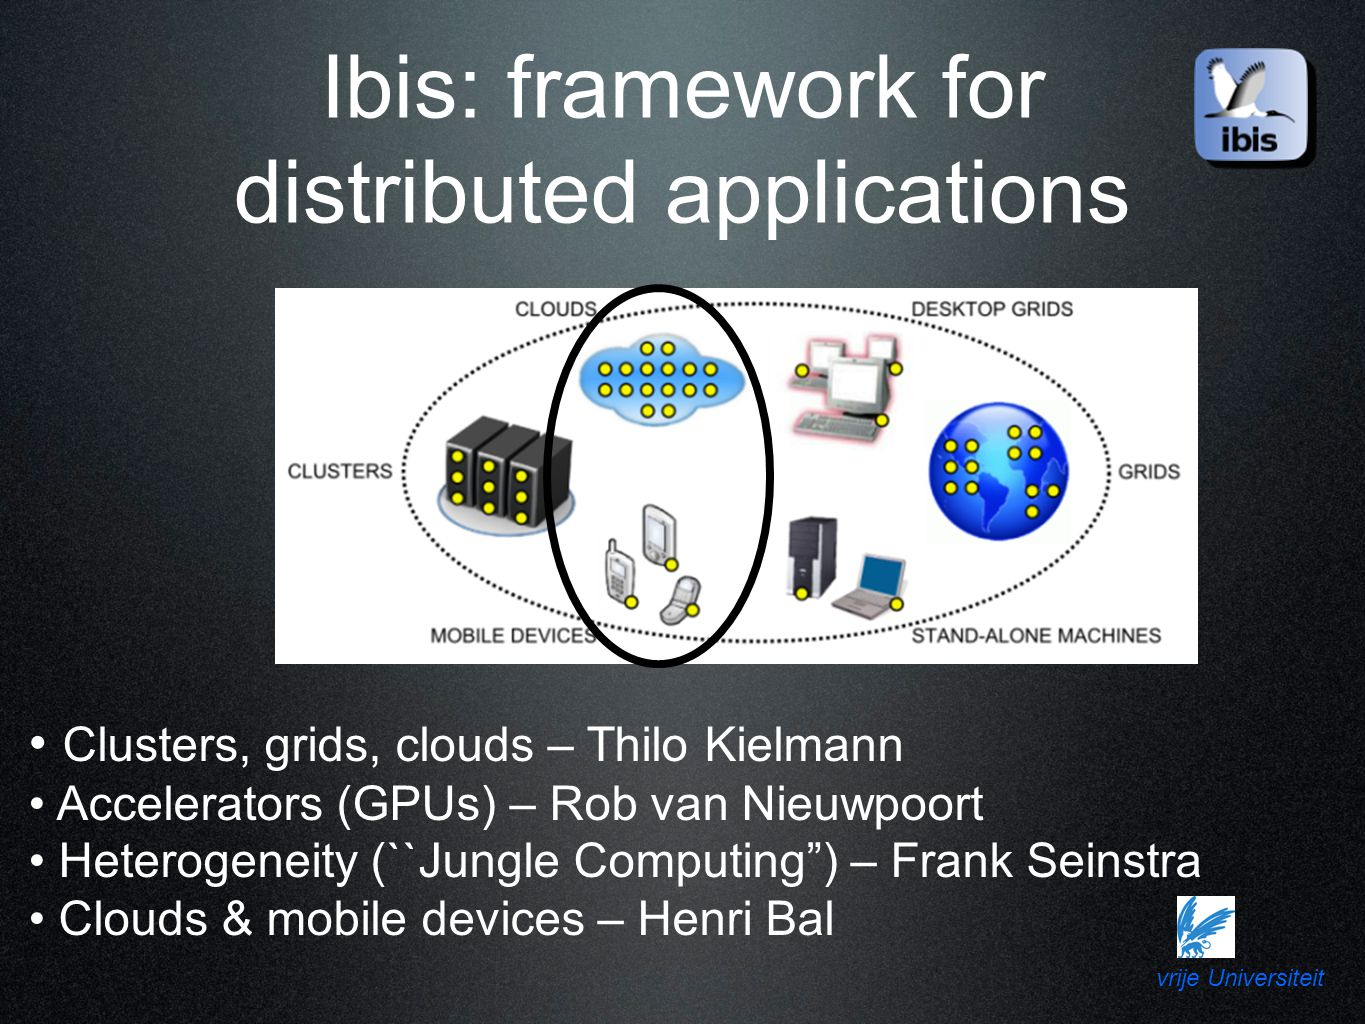 vrije Universiteit Communication Intensive Apps Applications and widgets that communicate periodically RSS Readers, Weather, Traffic, Social Networks, Sports Scores, News, Stock Market, etc.